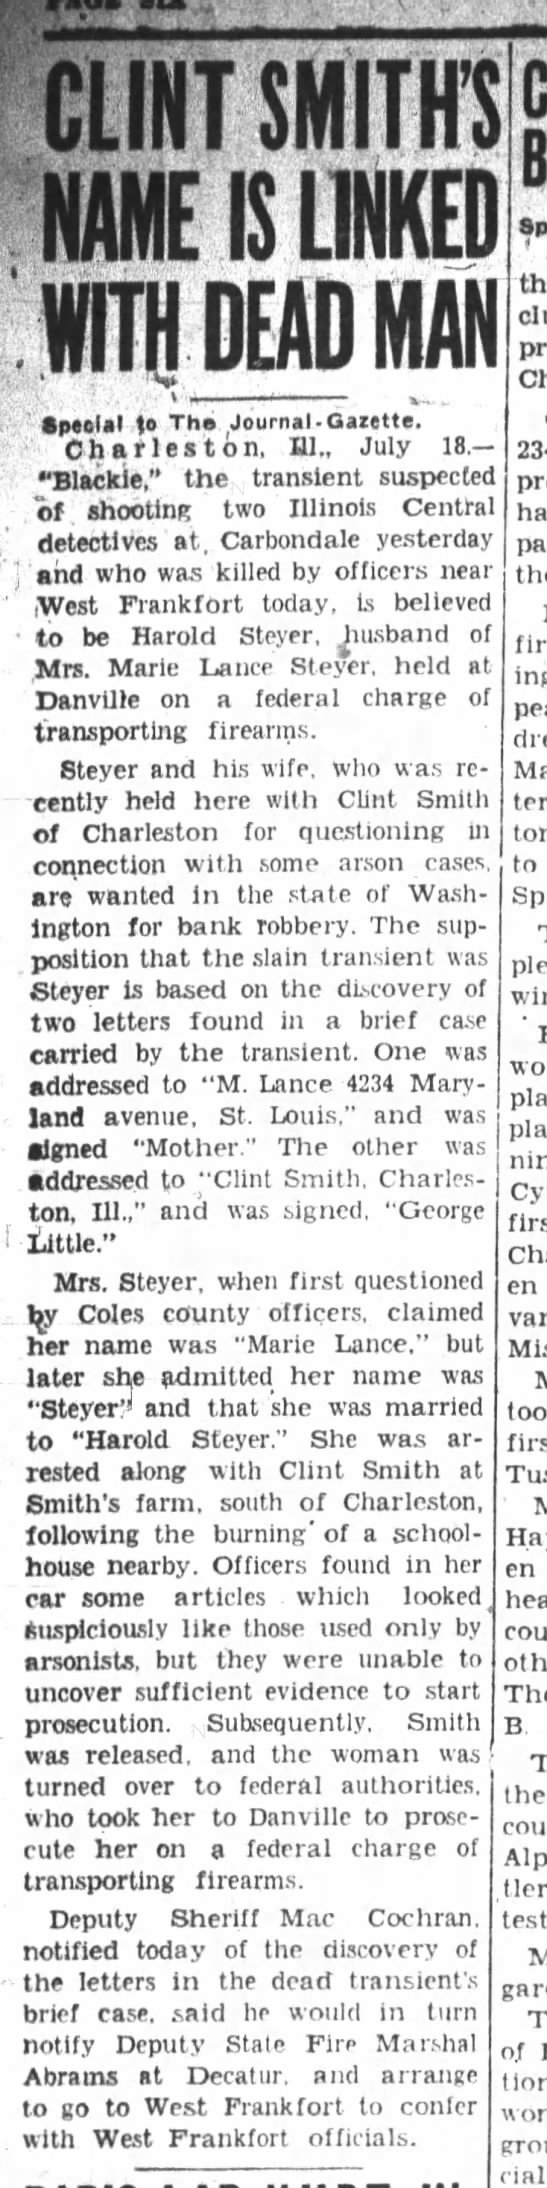 Marie Lance alias Marie Steyer, with address in St. Louis in 1930s Also Clint Smith of Coles Co, IL -